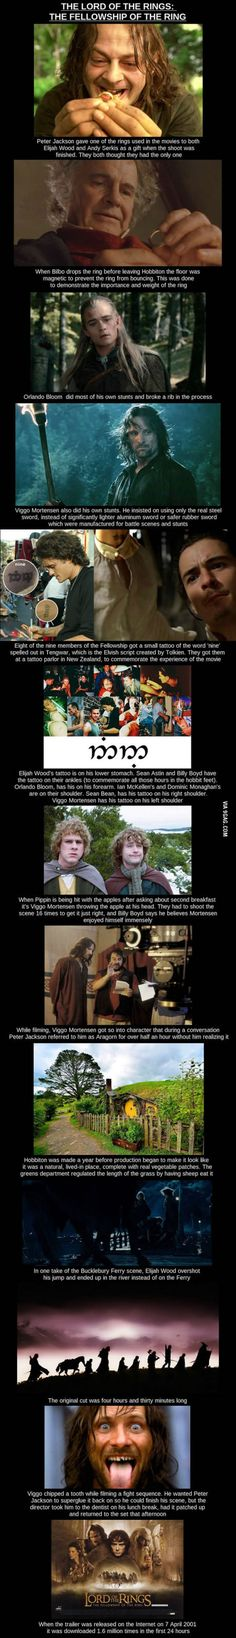 Facts you did not know about the Lord of the Ring movies